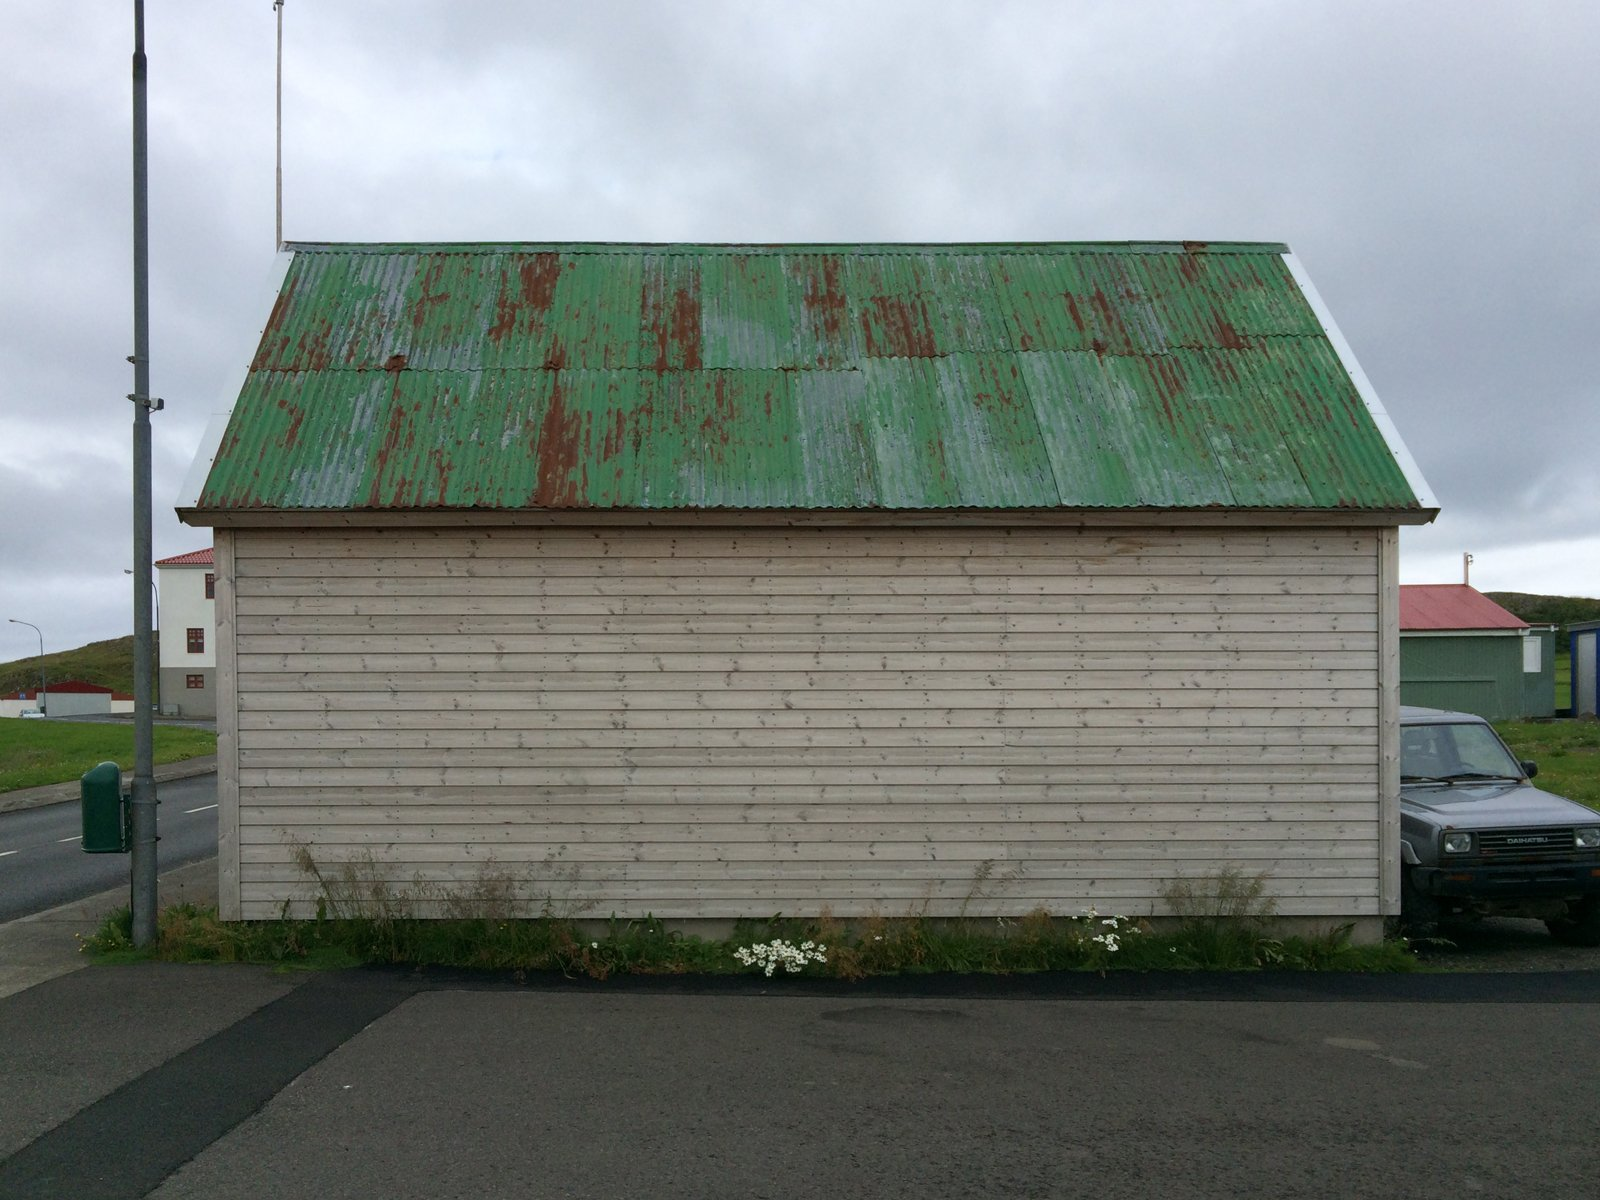 A windowless wall of a white clapboard building with a rusted green metal roof.